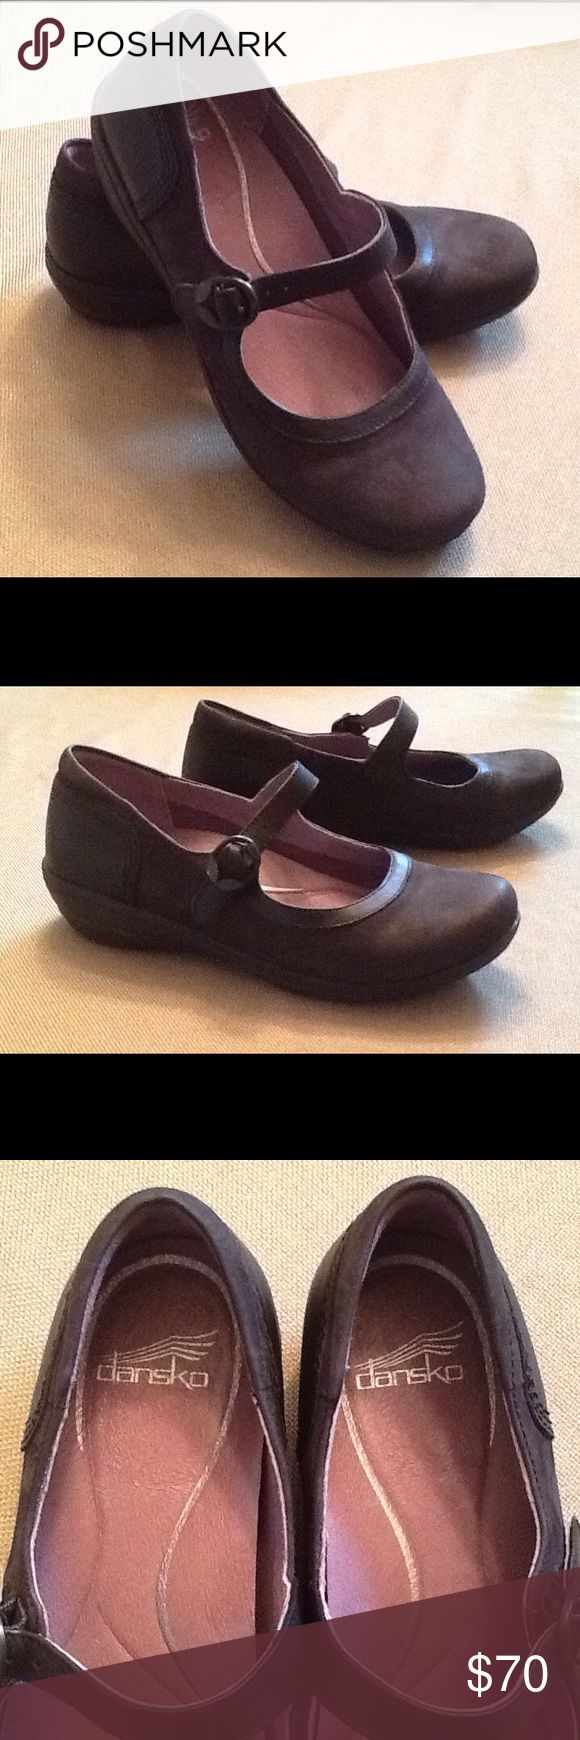 NWOT Dansko Mary Janes Super cute Black and Dark Gray Nubuck Leather Mary Jane.  Brand new, size 38.  This shoe has a removable, cushioned footbed with arch support.  Leather strap, 3M Scothgard  protection for stain resistance. Dansko Shoes Flats & Loafers